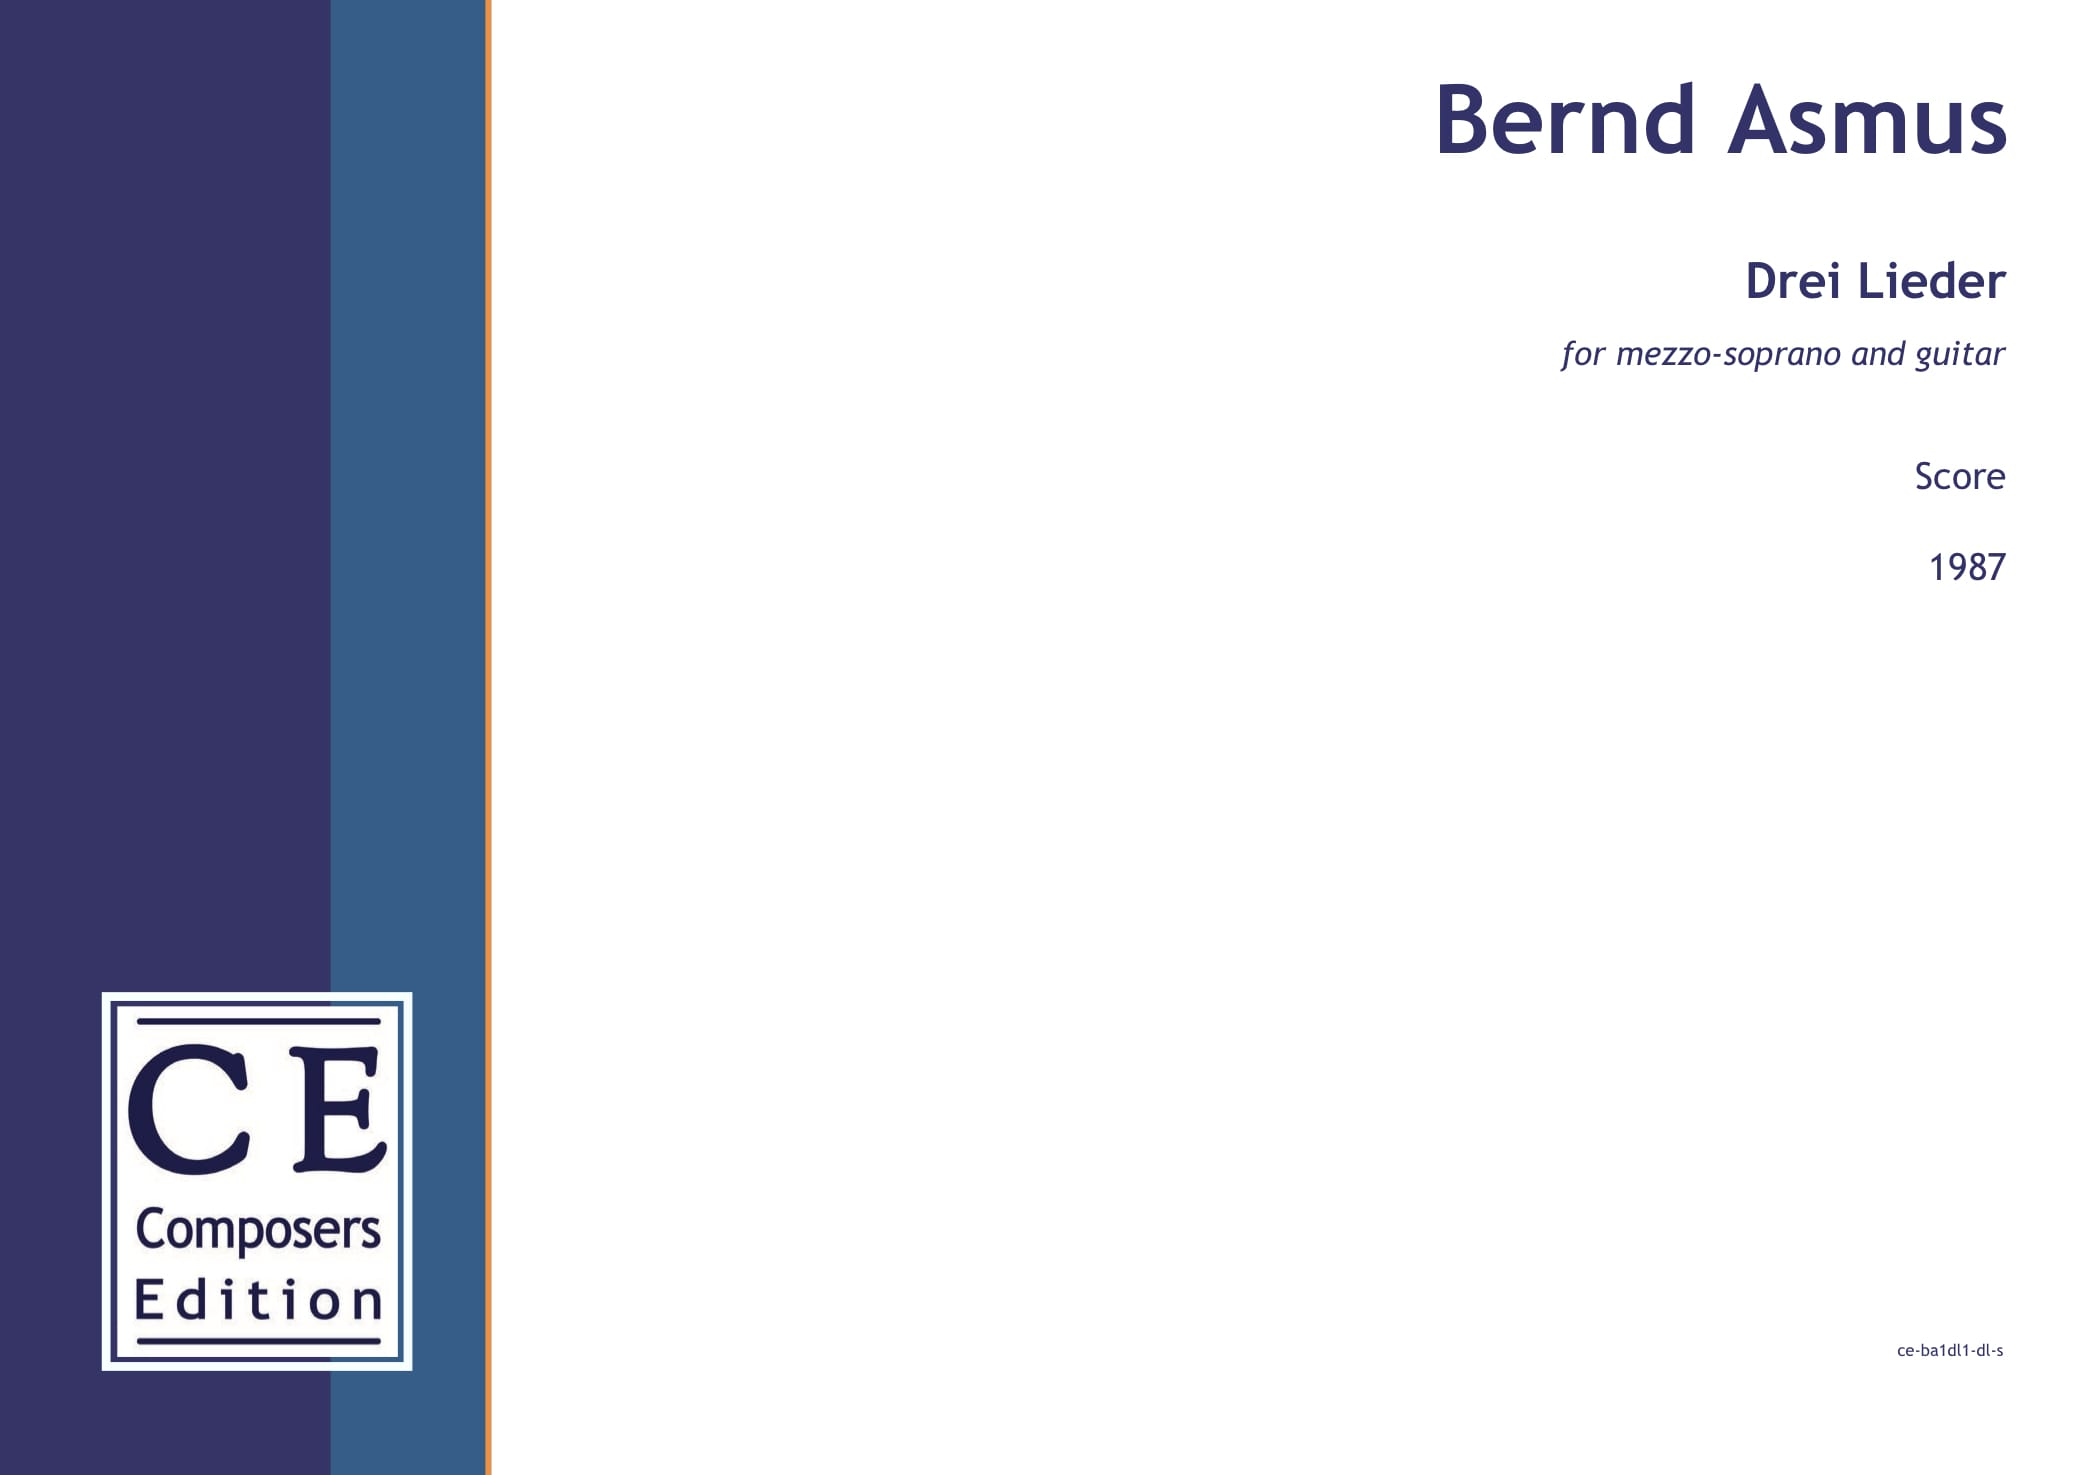 Bernd Asmus: Drei Lieder for mezzo-soprano and guitar